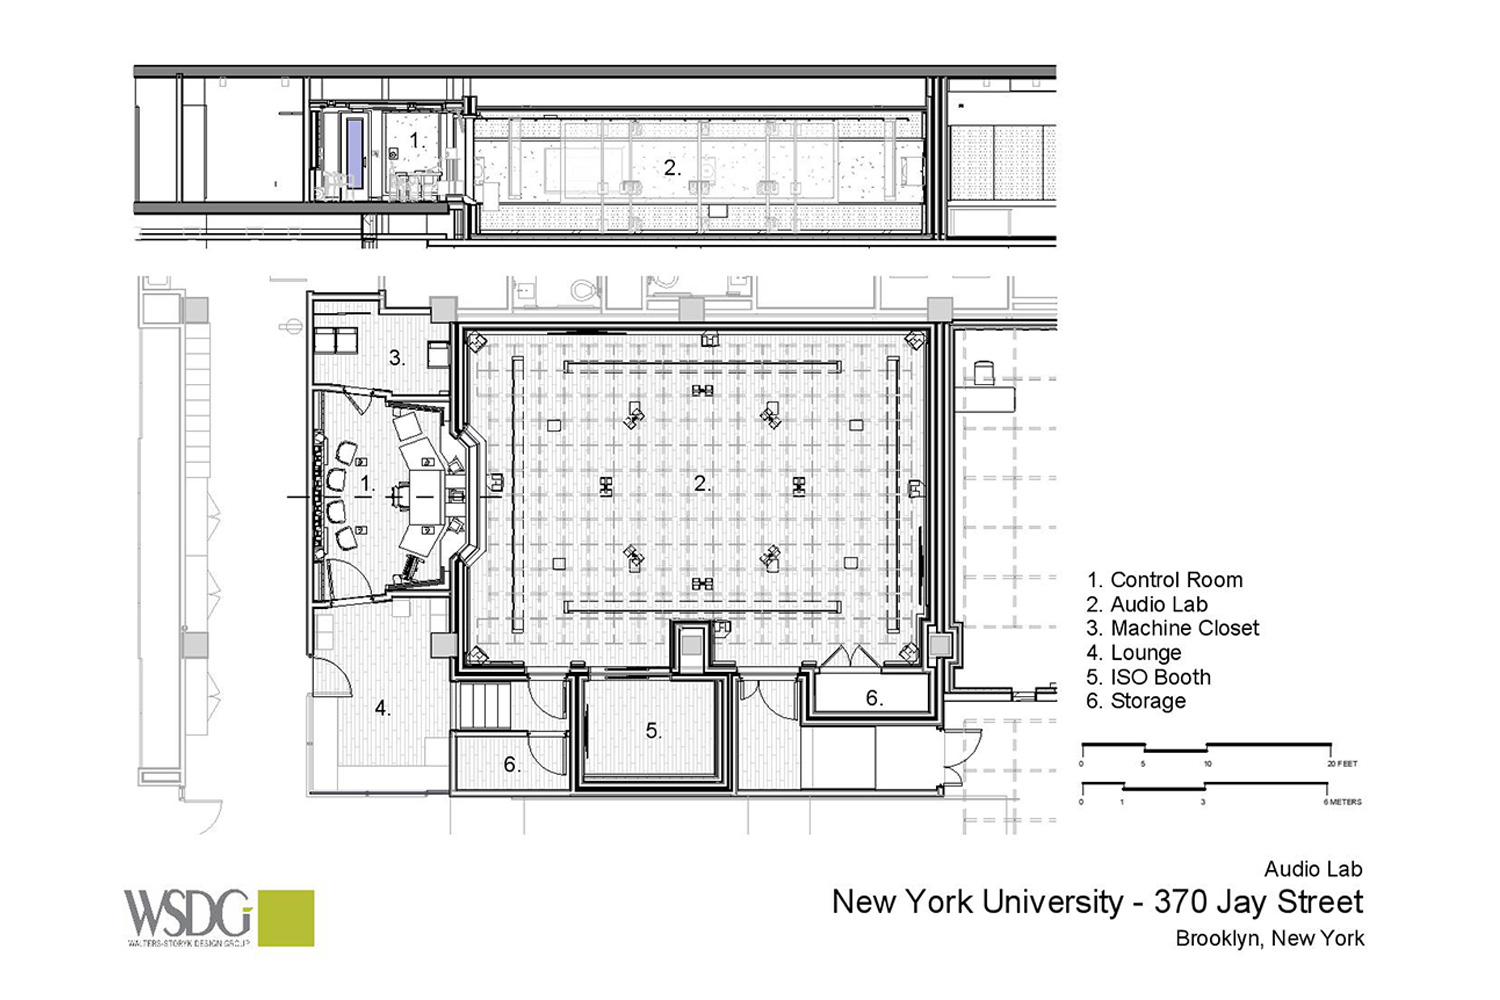 WSDG was engaged to design three key elements for th NYU Jay Street sustainable technology Center. Immersive audio lab, garage media and motion capture lab. Presentation drawing 3.